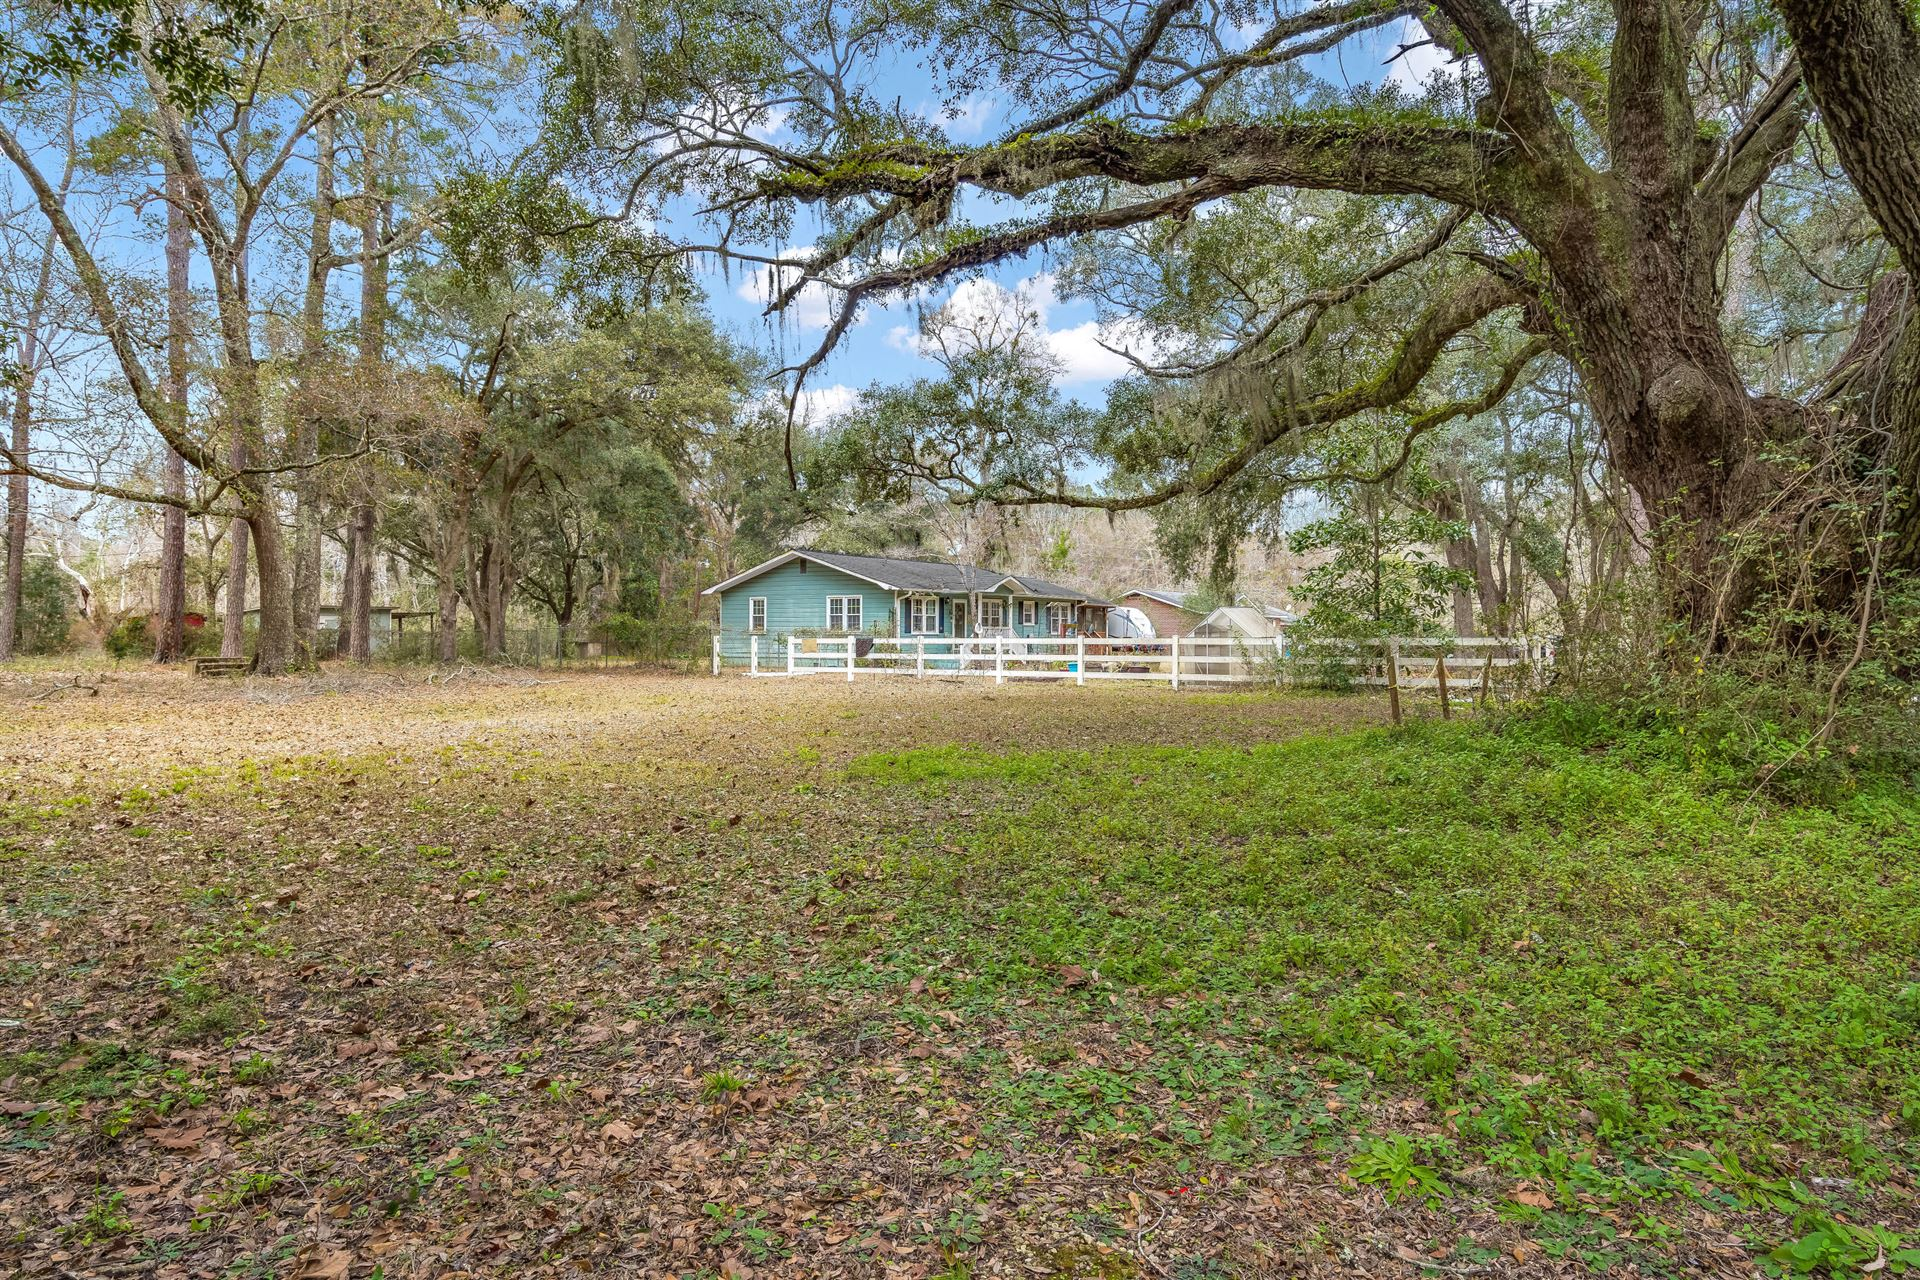 Photo of 5611 Highway 174, Adams Run, SC 29426 (MLS # 21002204)